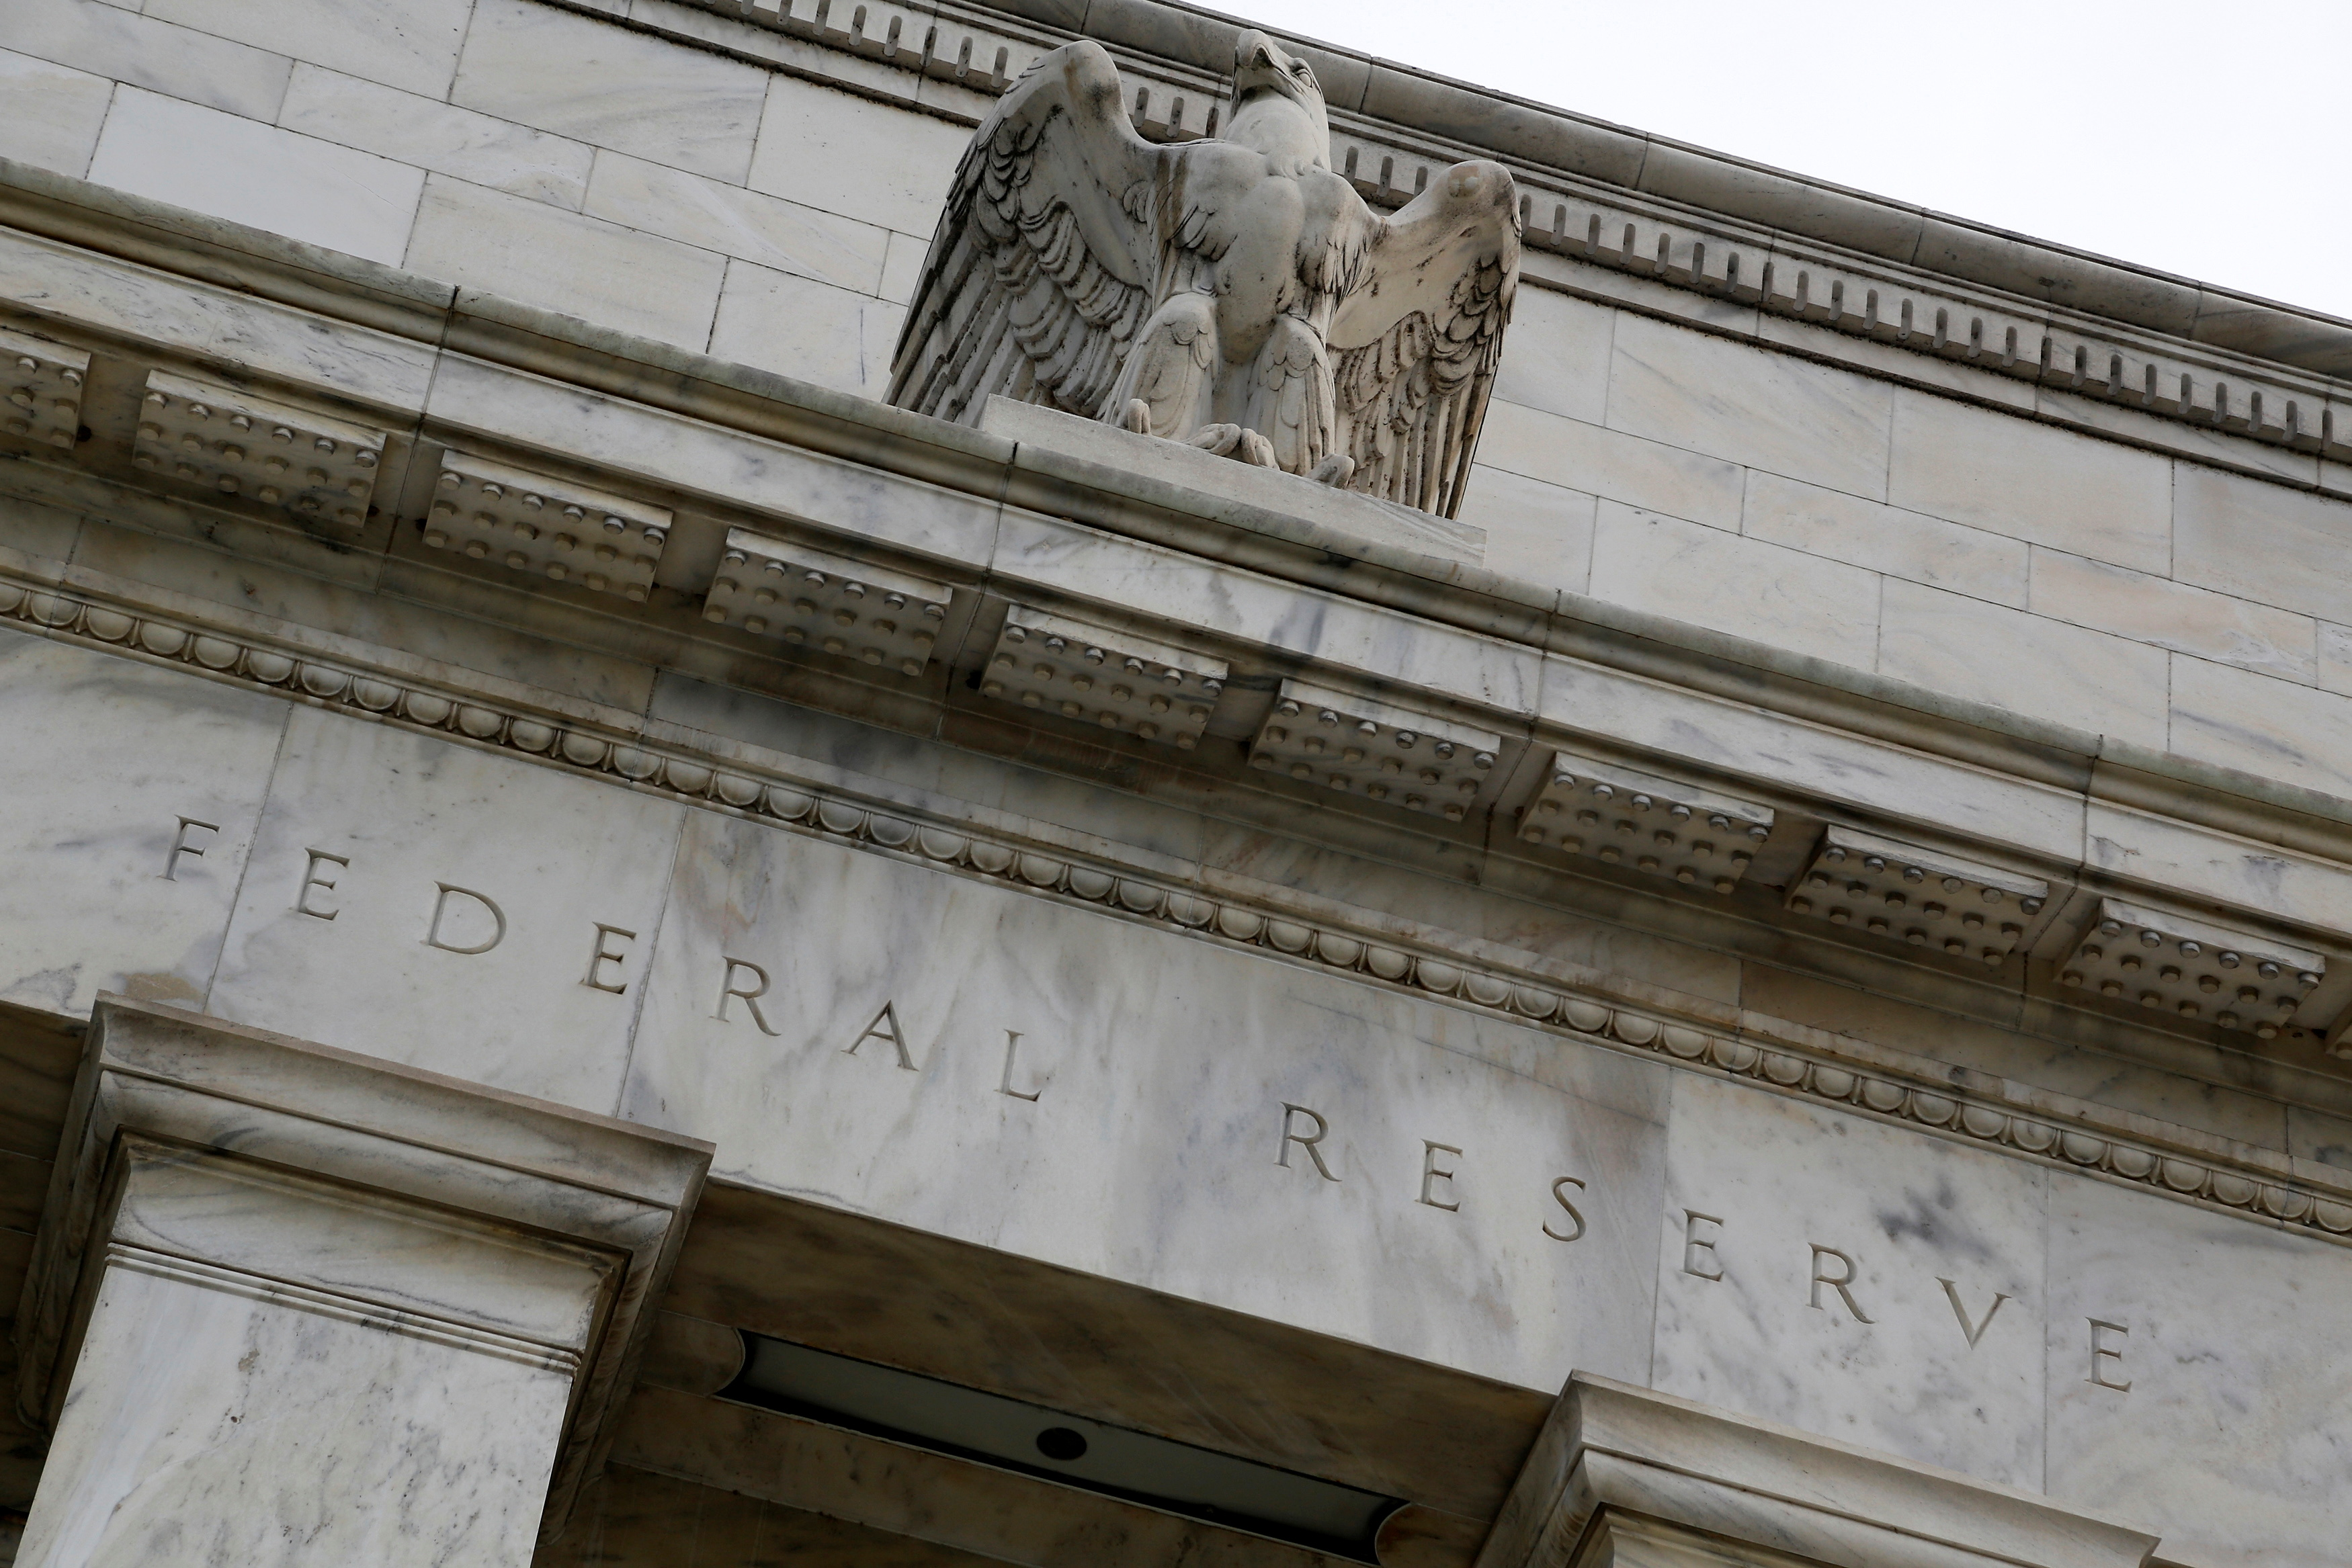 An eagle tops the U.S. Federal Reserve building's facade in Washington, July 31, 2013. REUTERS/Jonathan Ernst